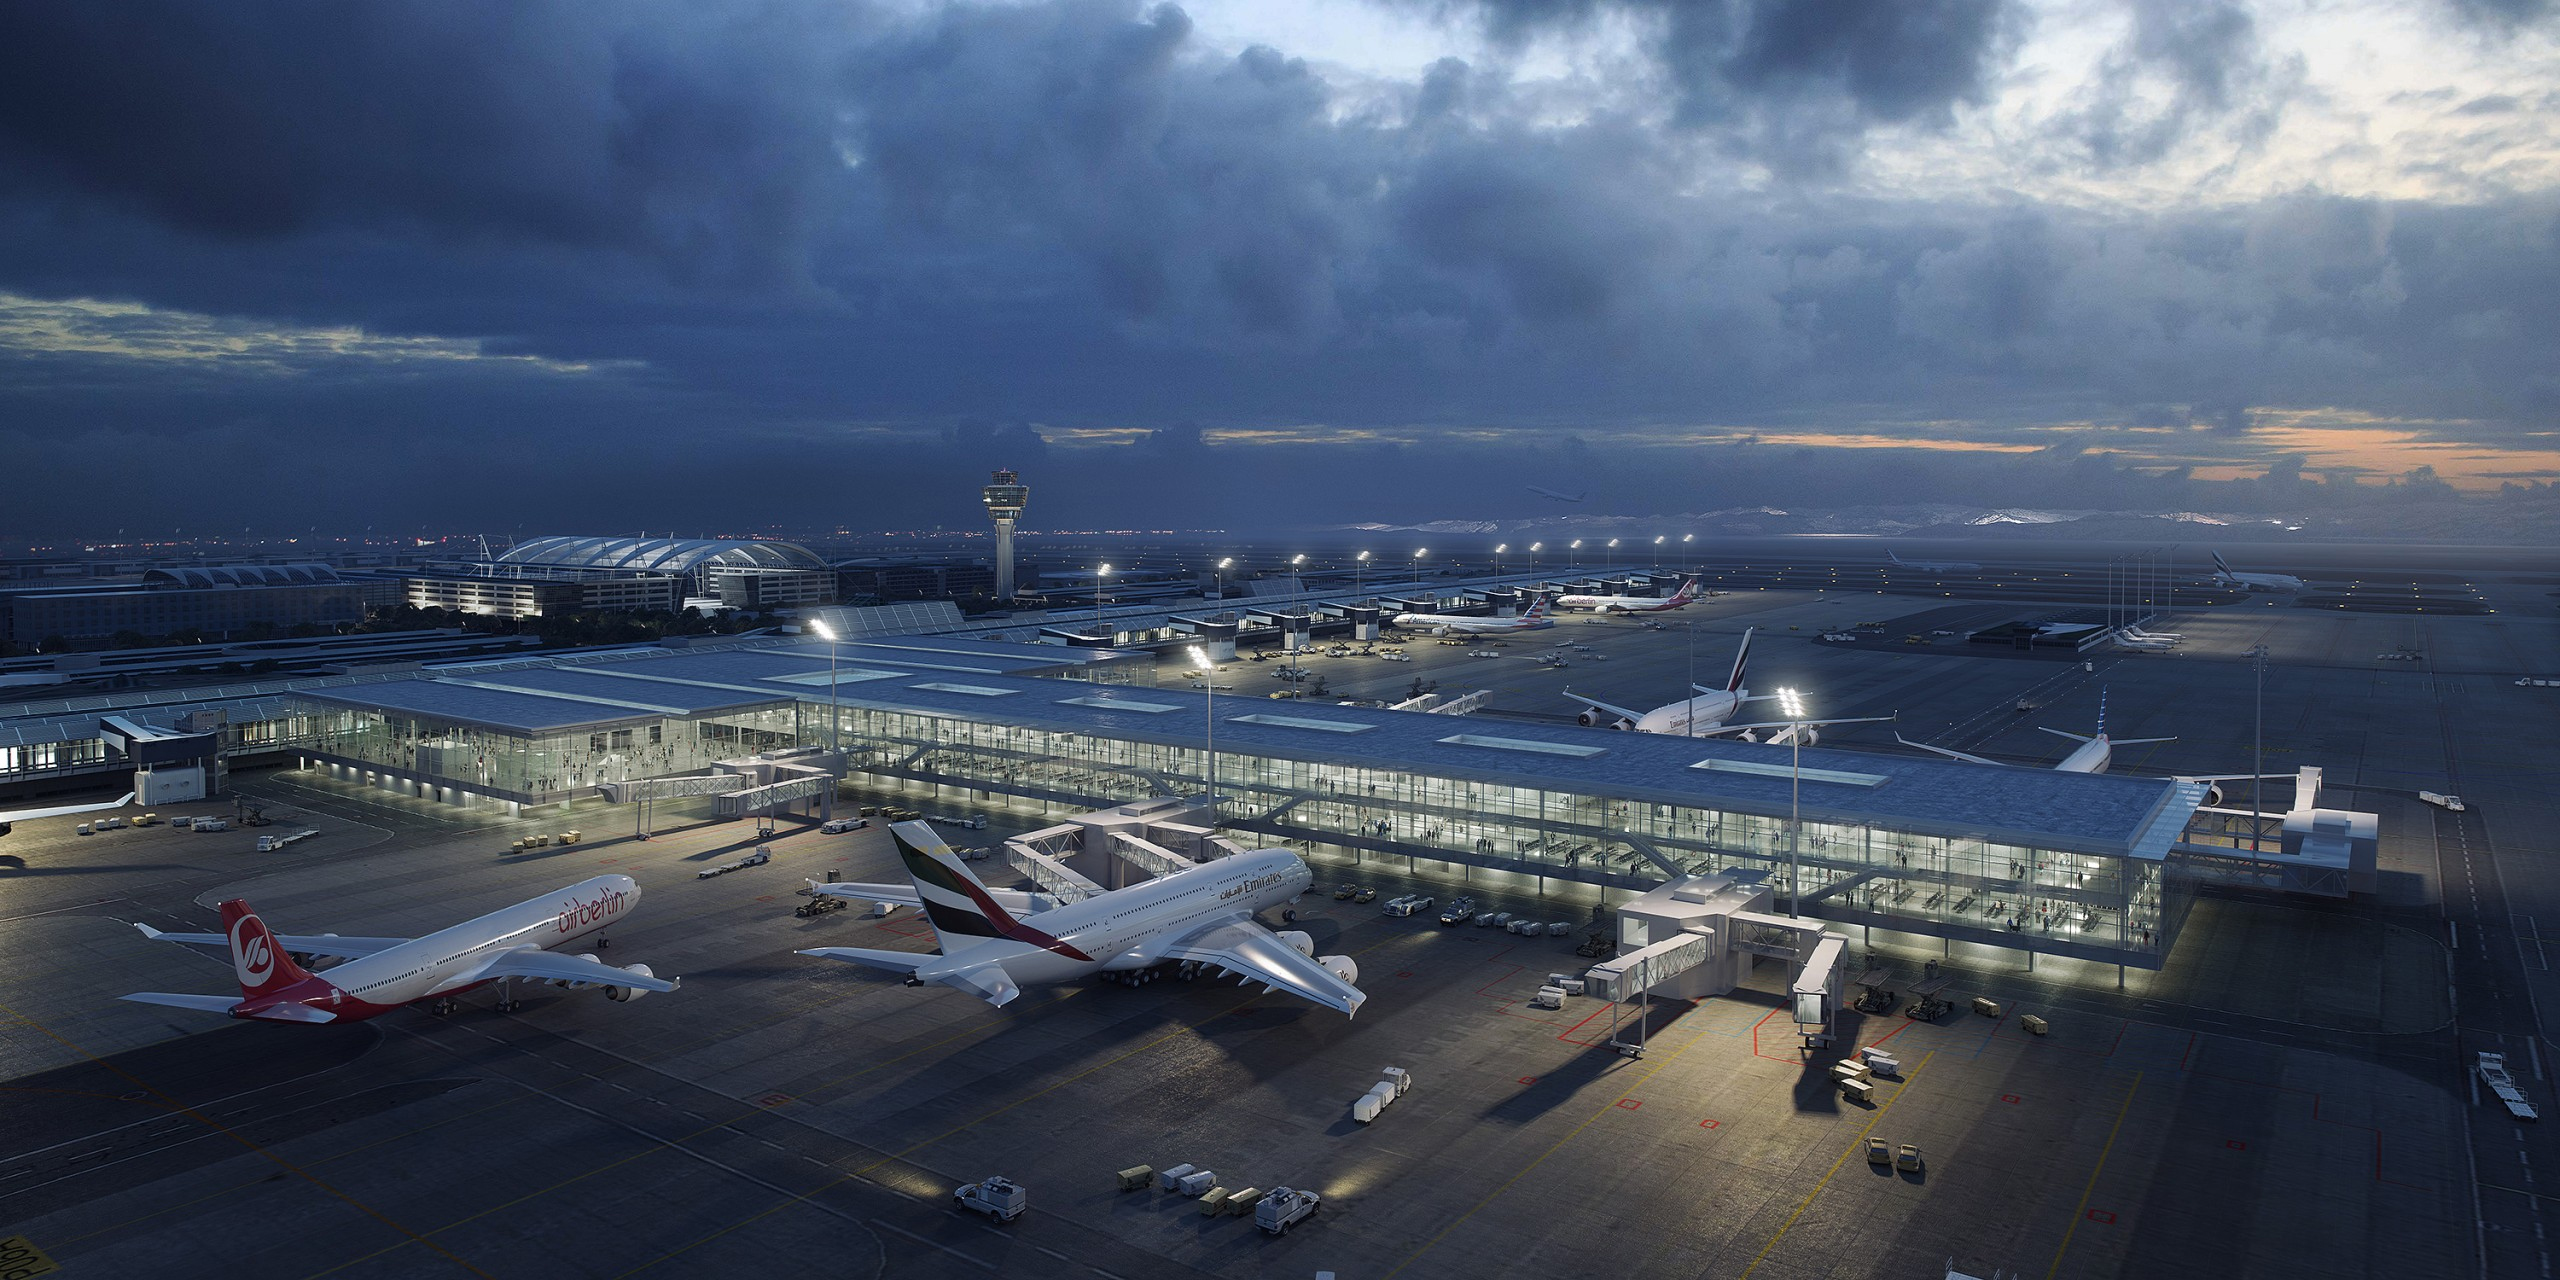 Aerial visualisation: evening  view of an airport terminal extension building in Munich, Germany